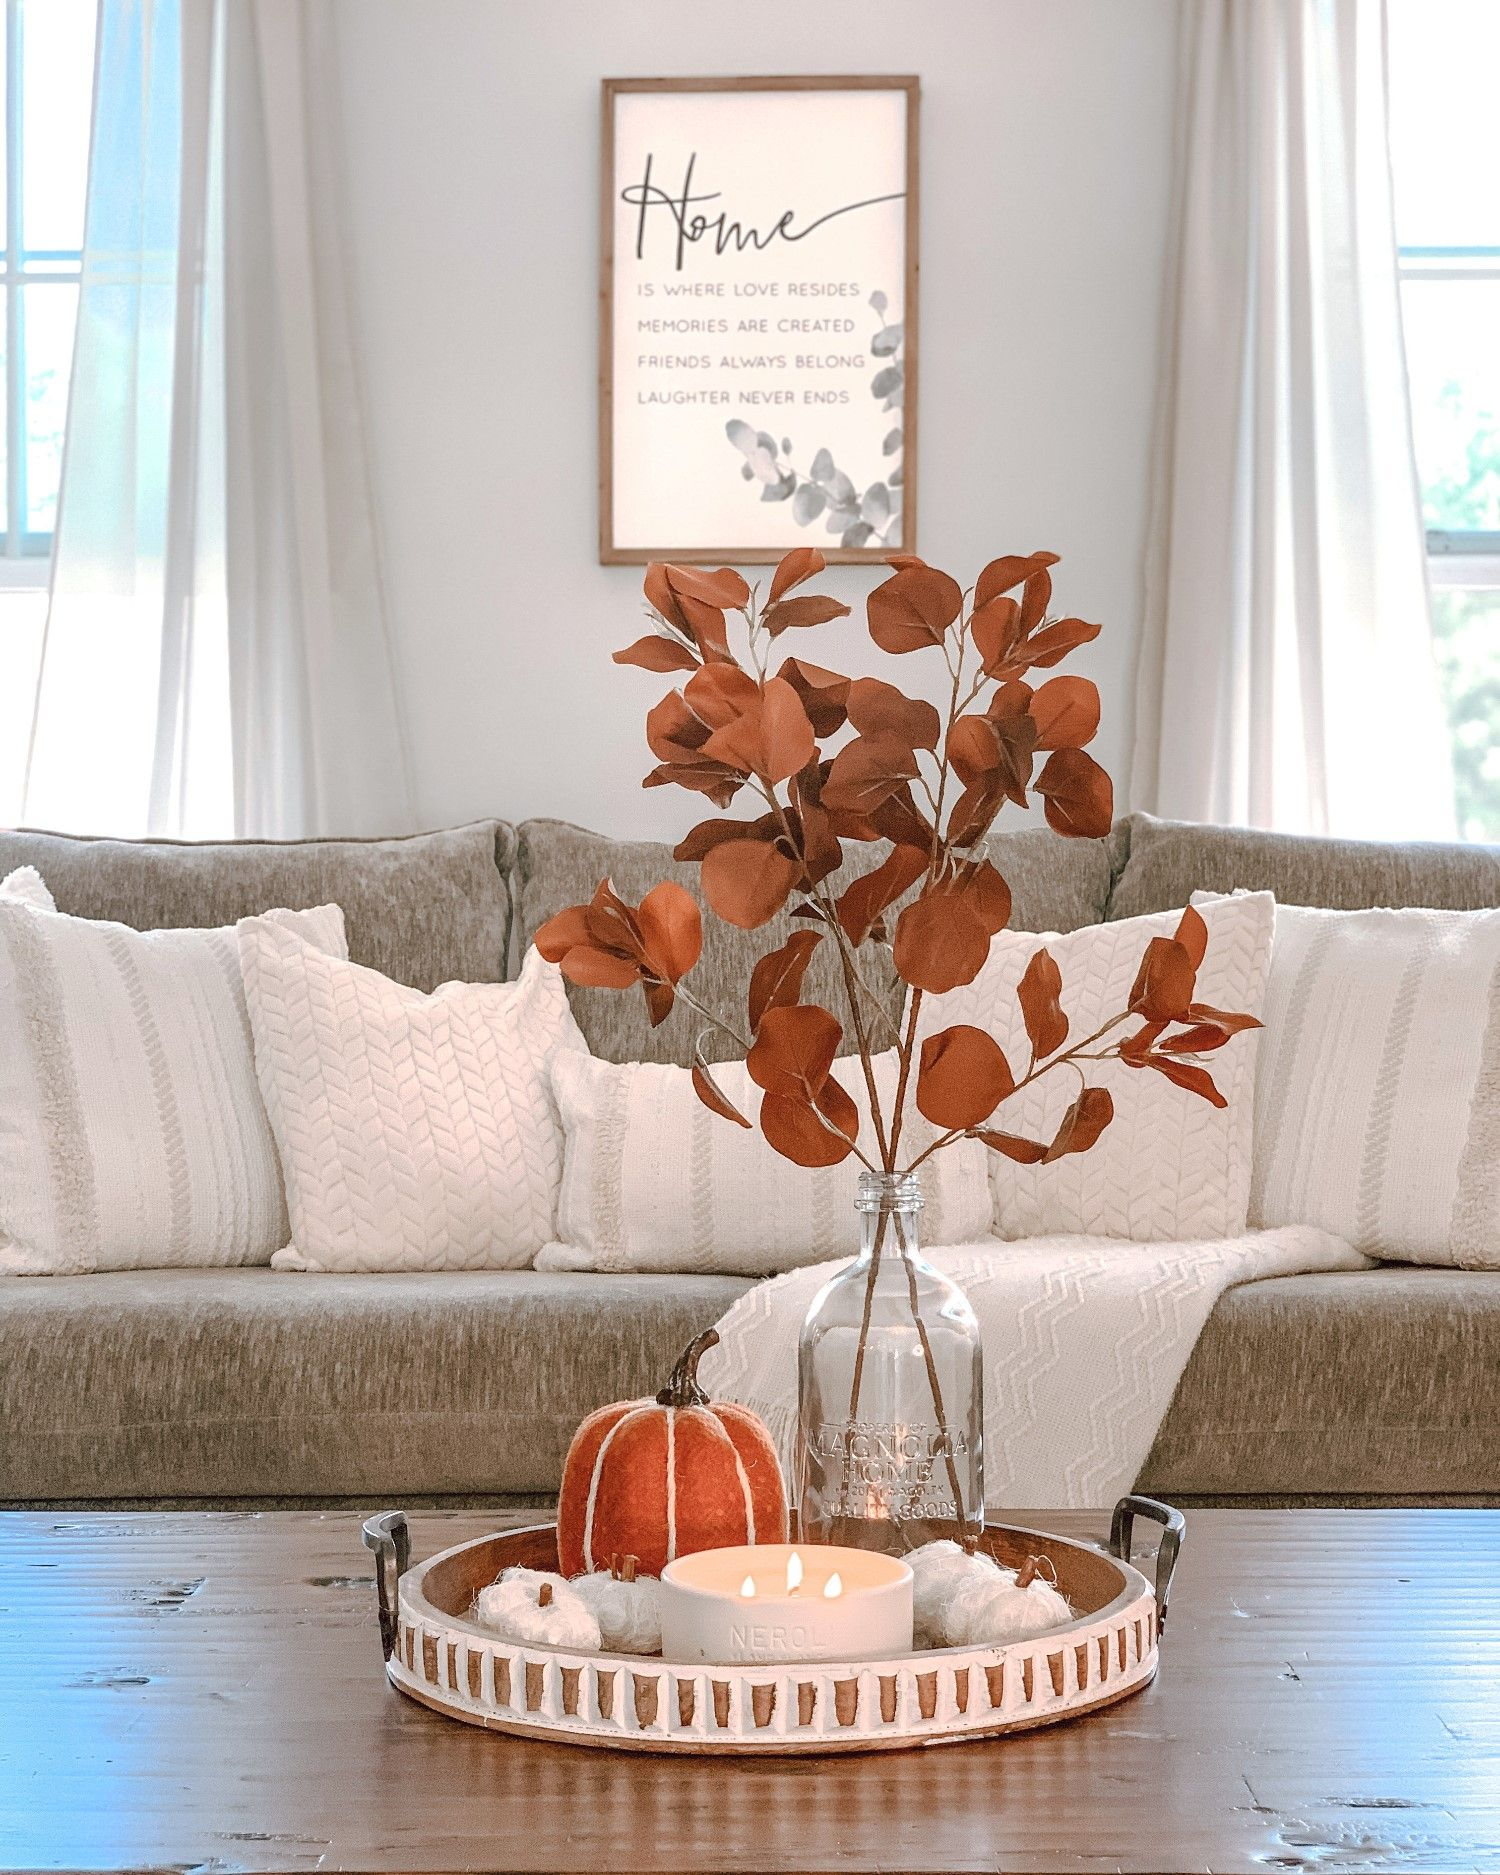 6 Tips to Decorate your Home for Fall